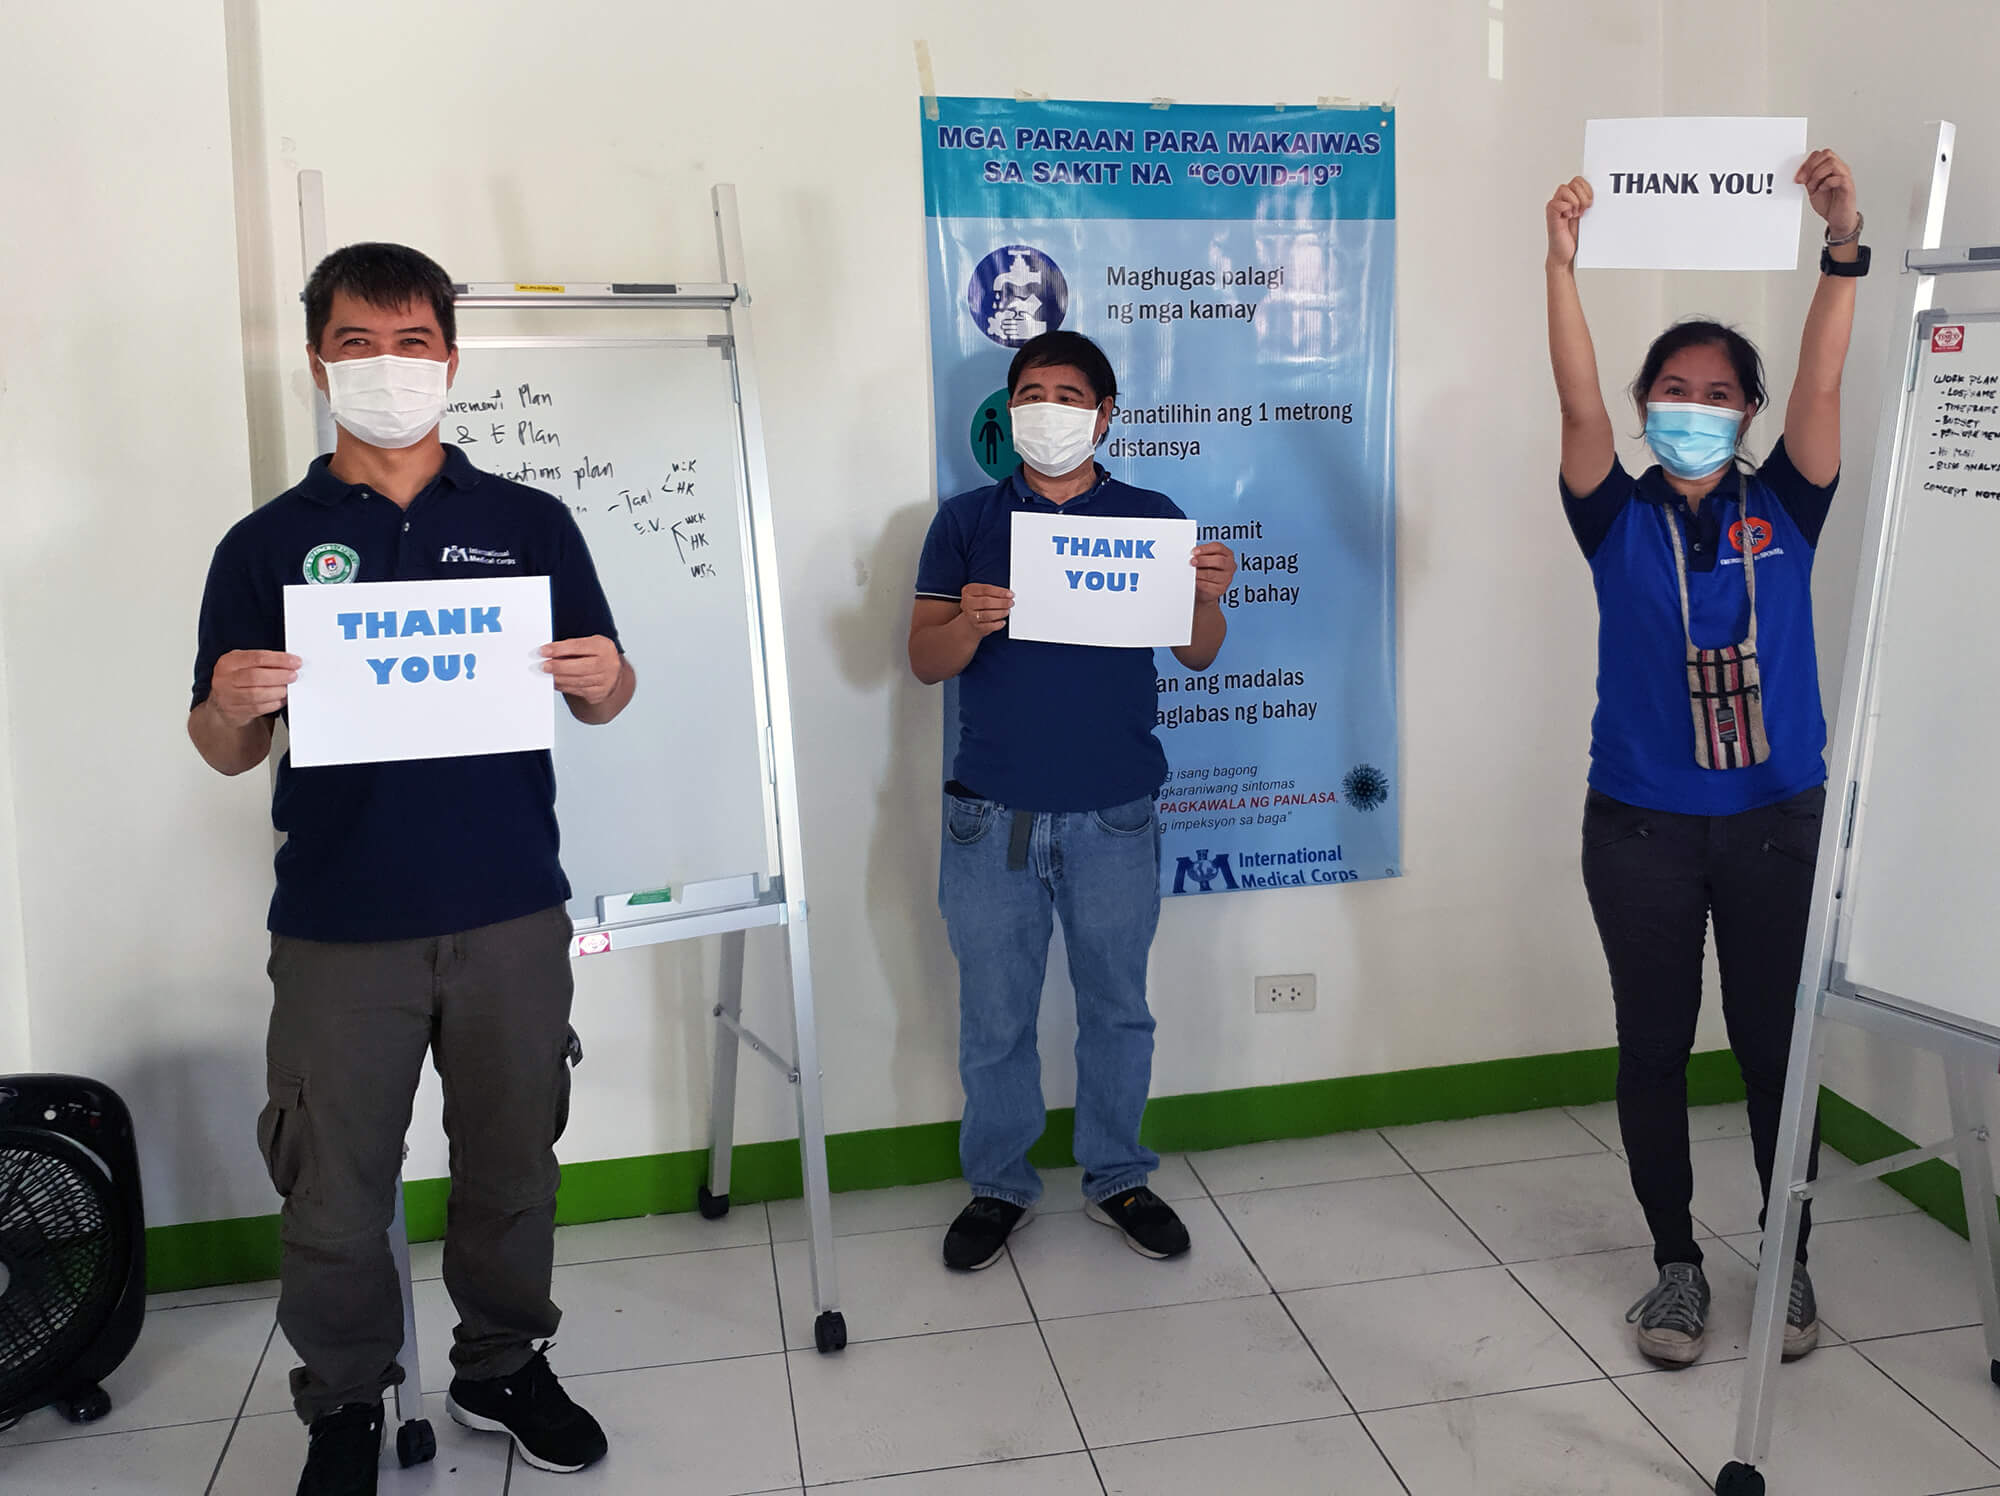 International Medical Corps staff in the Philippines.